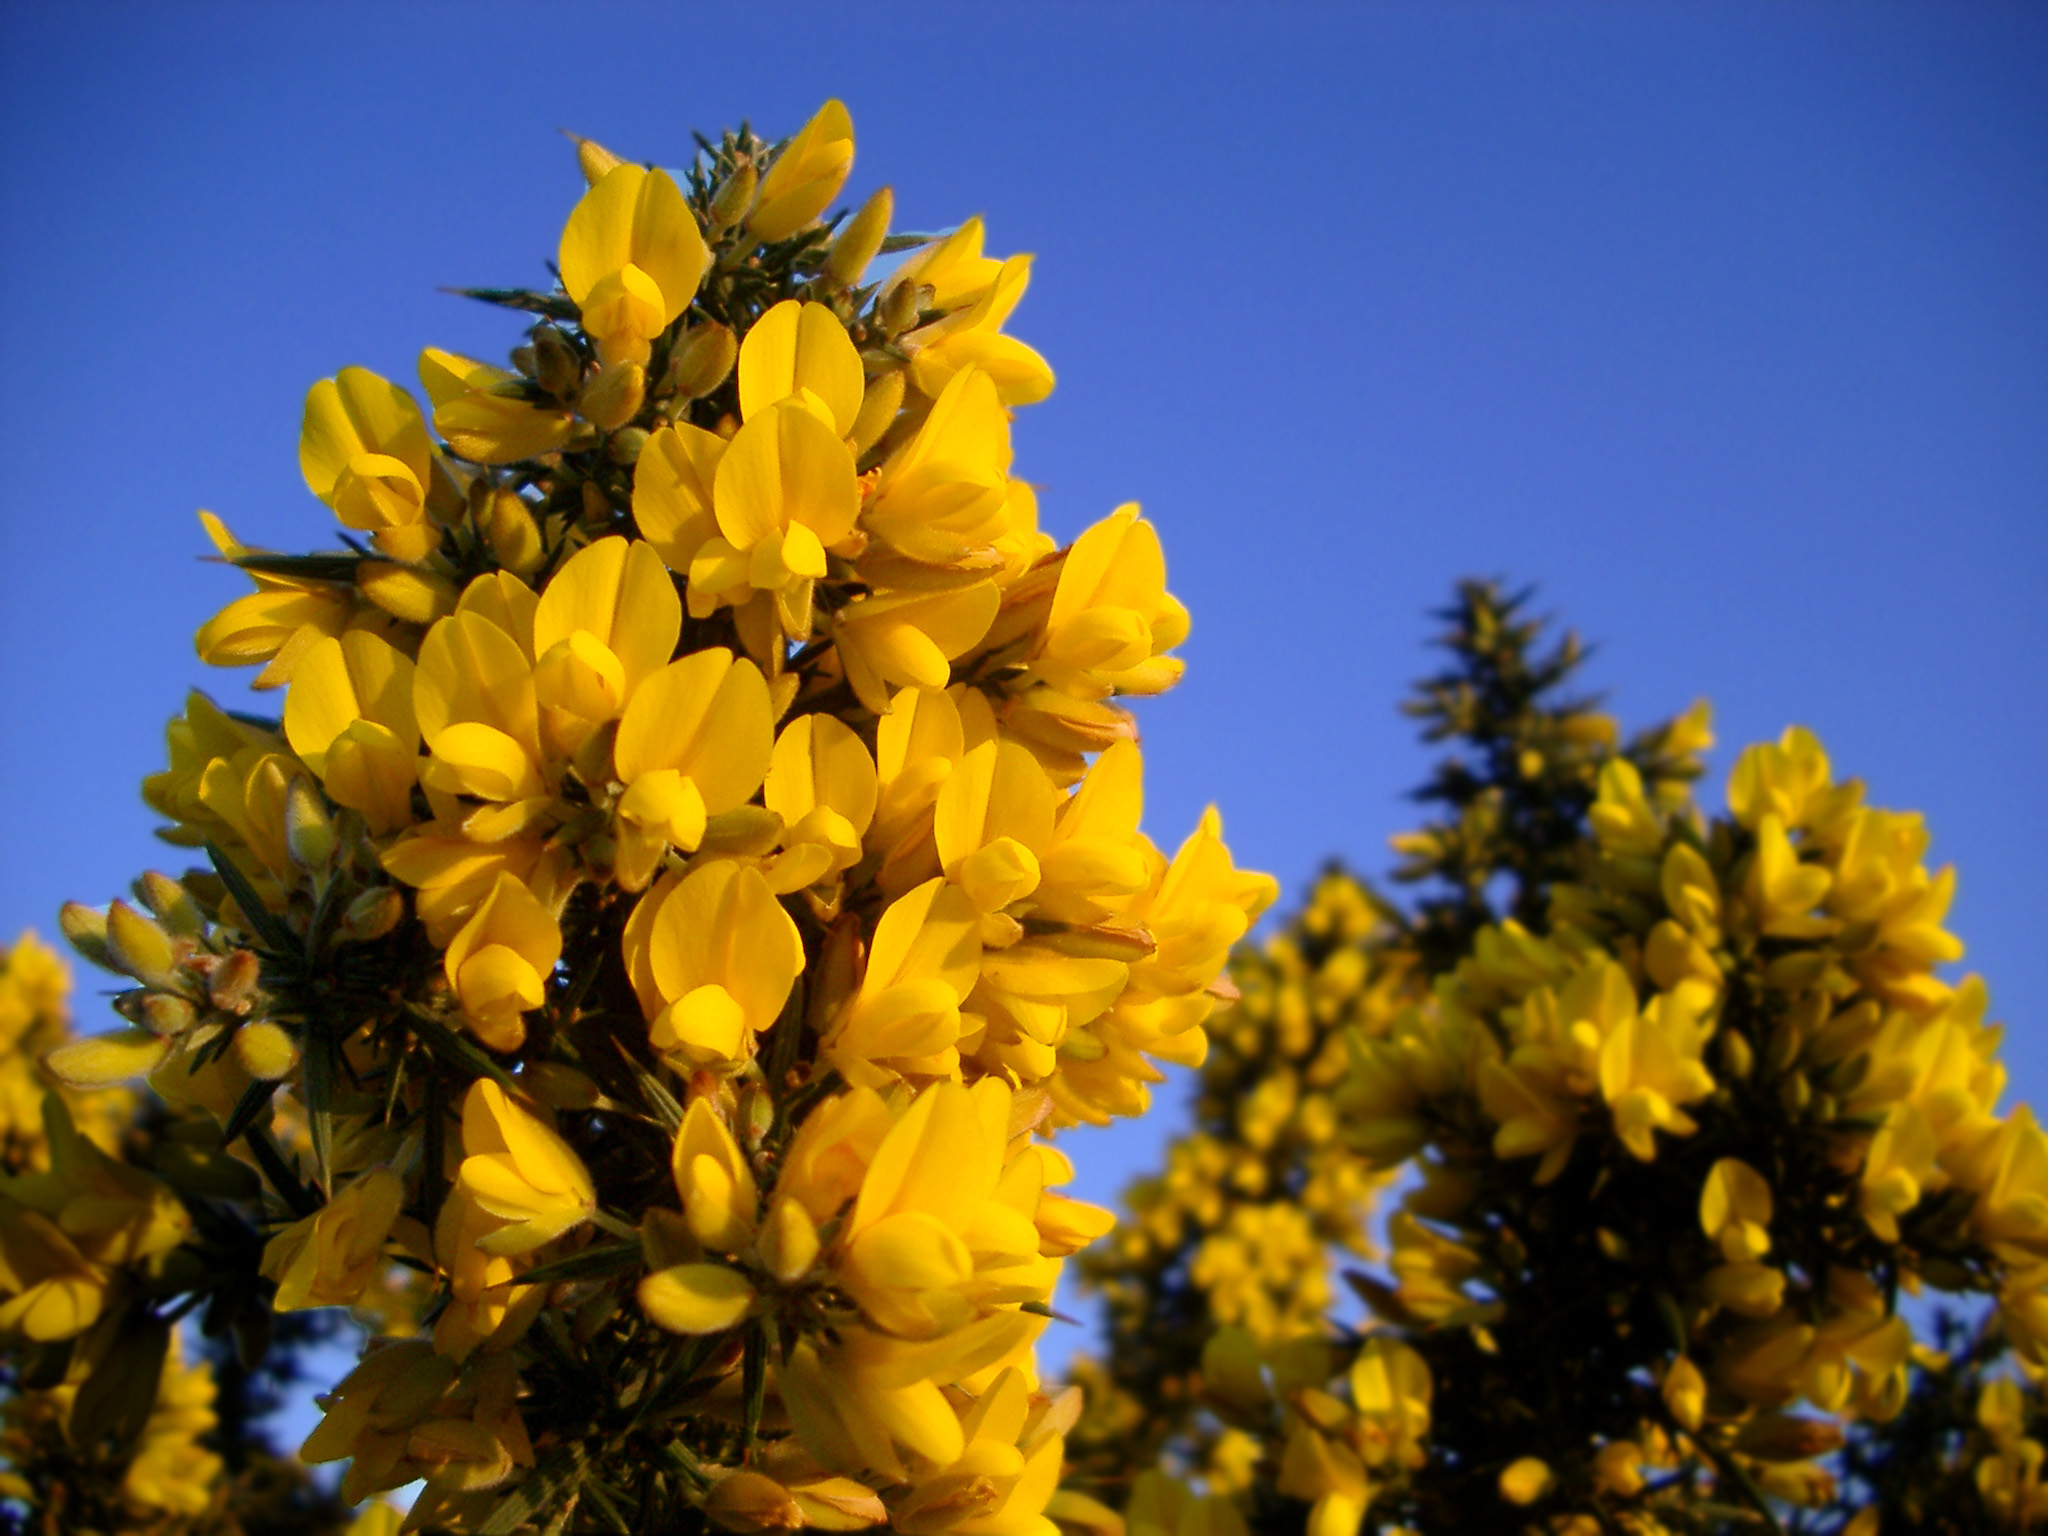 Gorse (Ulex europaeus) growing in the new forest